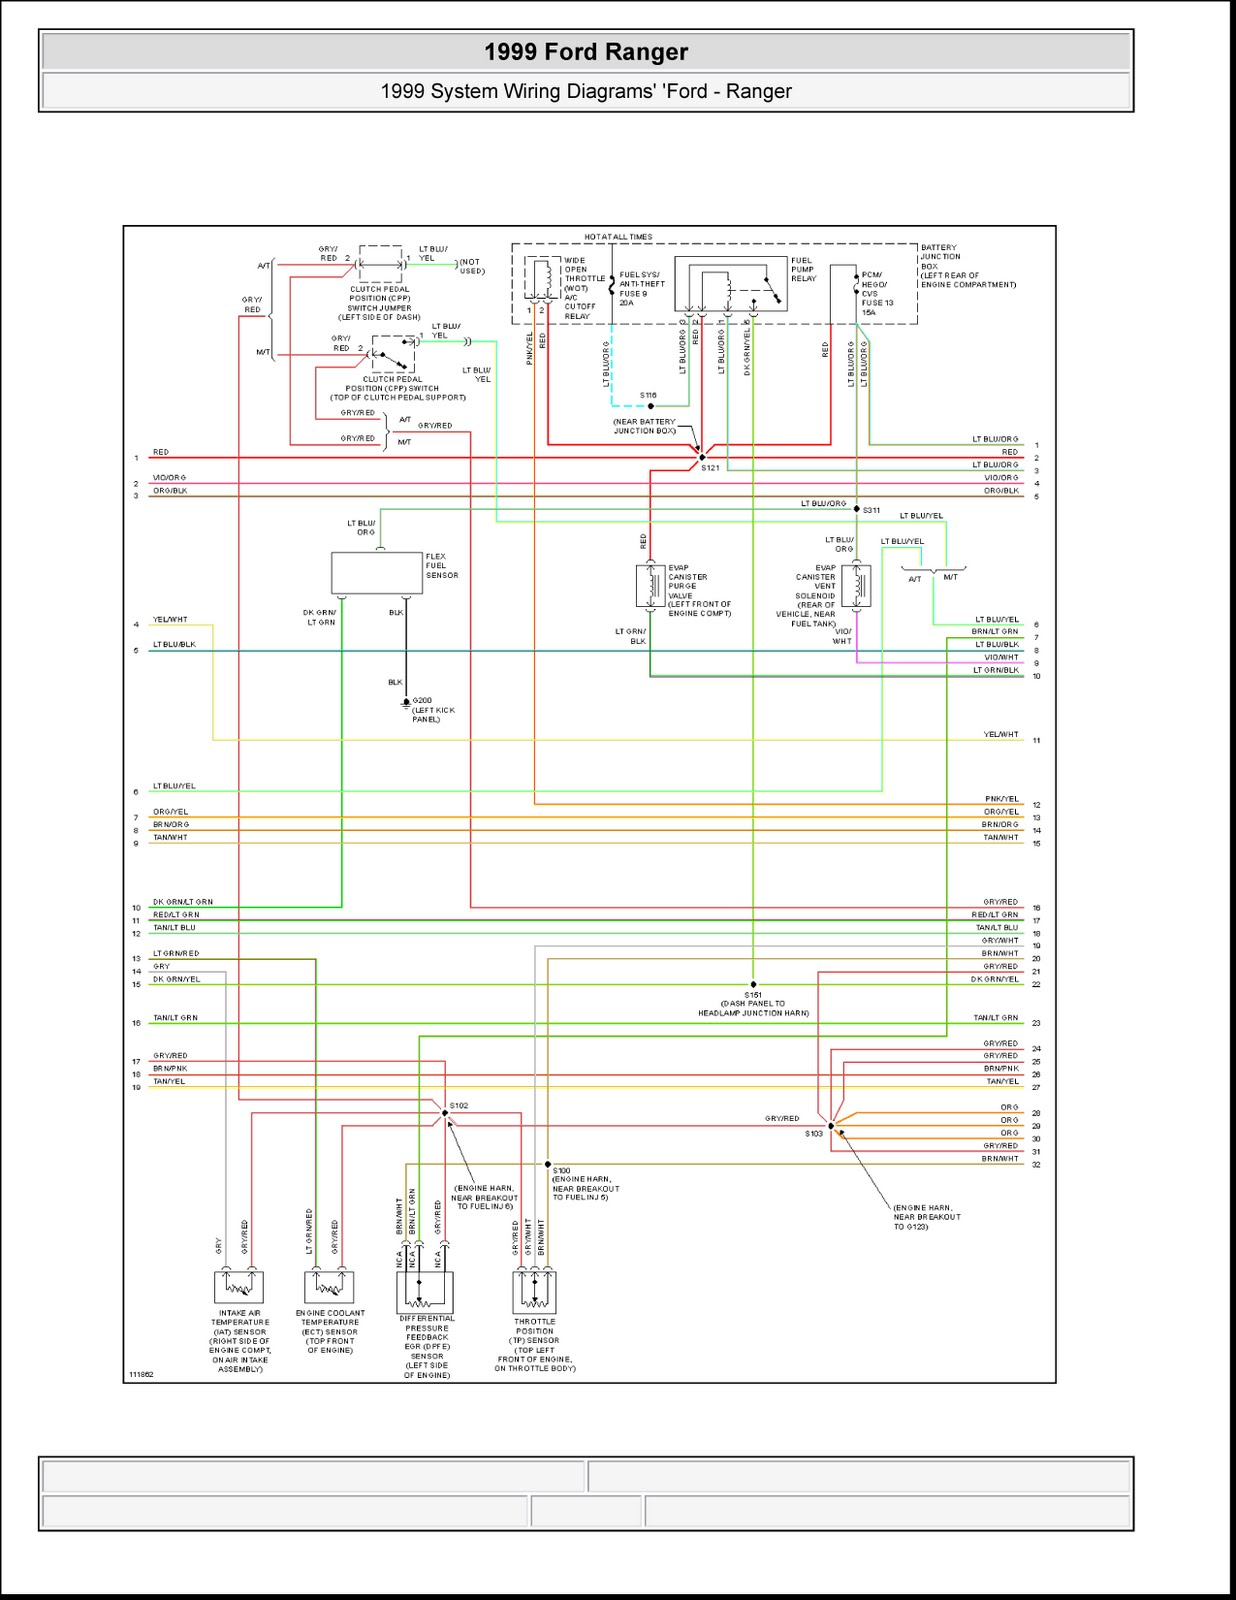 Junkshon Box Wiring Diagram Ford Model A - Wiring Diagram Recent  arch-adapter - arch-adapter.cosavedereanapoli.itarch-adapter.cosavedereanapoli.it